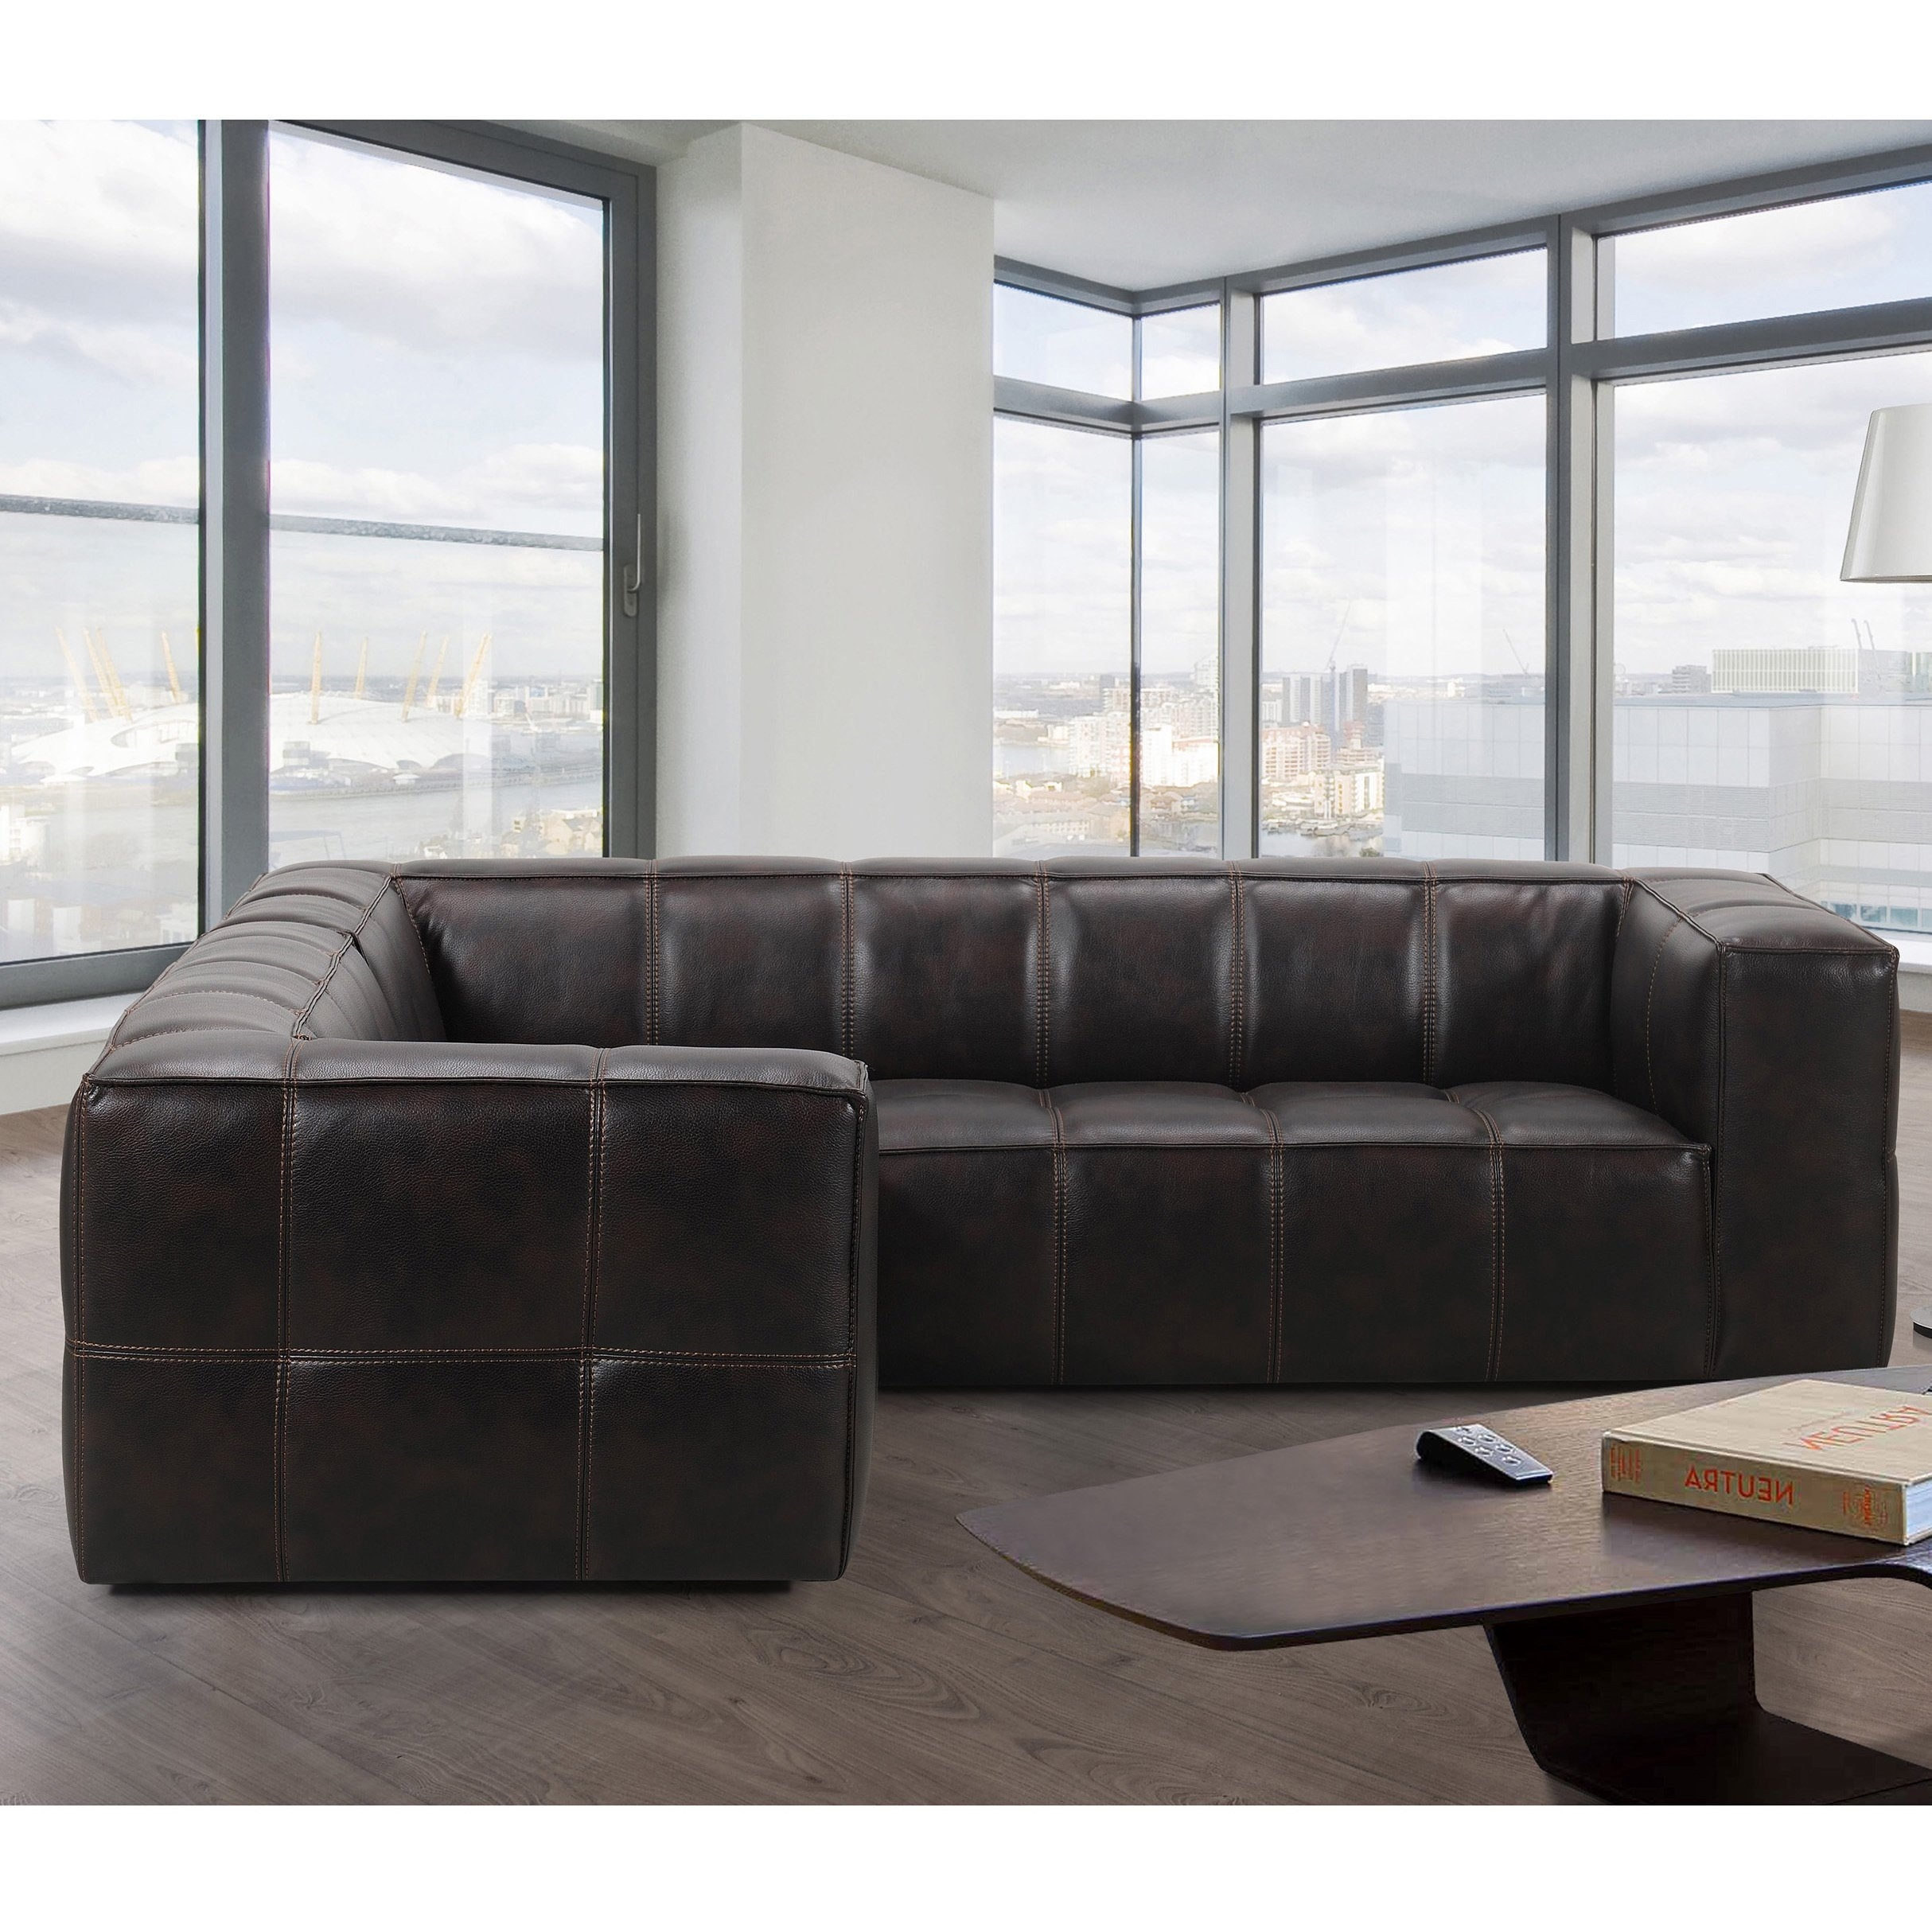 Shop Athens Memory Foam Sectional Sofa – Free Shipping Today Pertaining To Mesa Foam 2 Piece Sectionals (View 9 of 25)